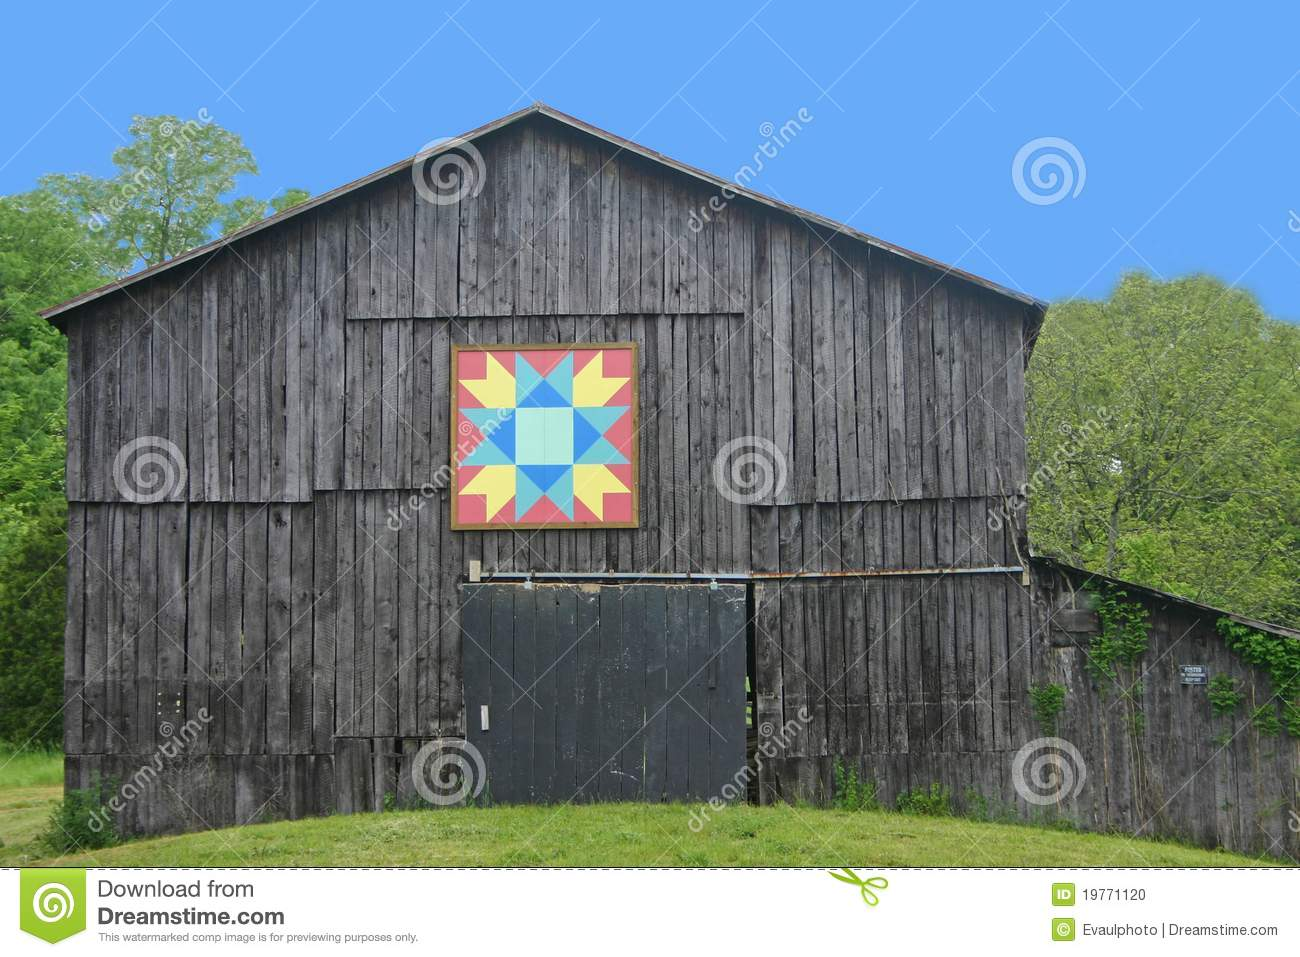 Kentucky quilt barn stock photo image 19771120 for Garden shed quilting